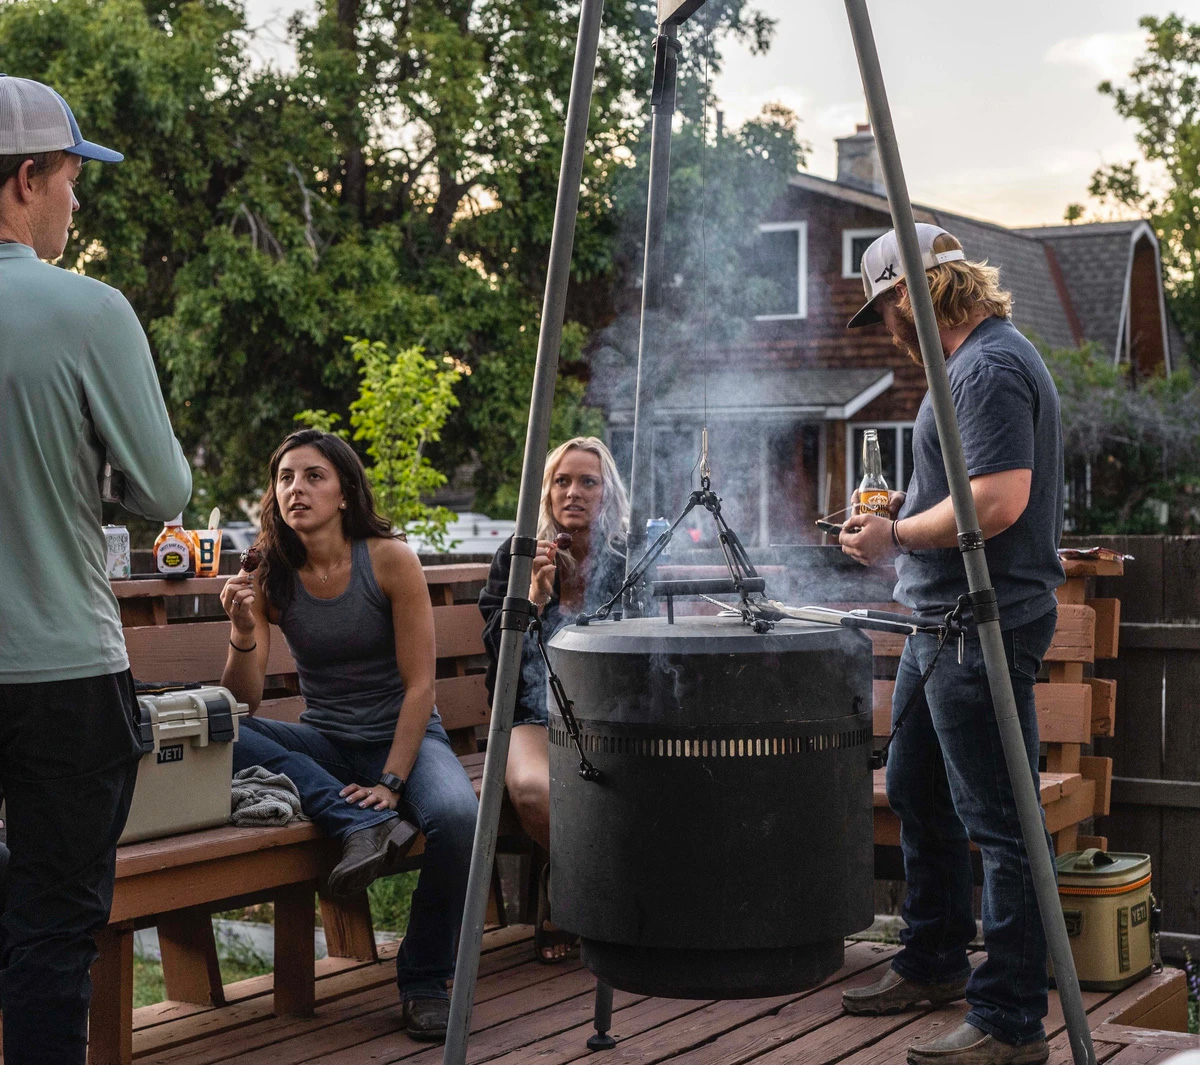 Grill, Smoker & Fire Pit In One: The Burch Barrel at werd.com